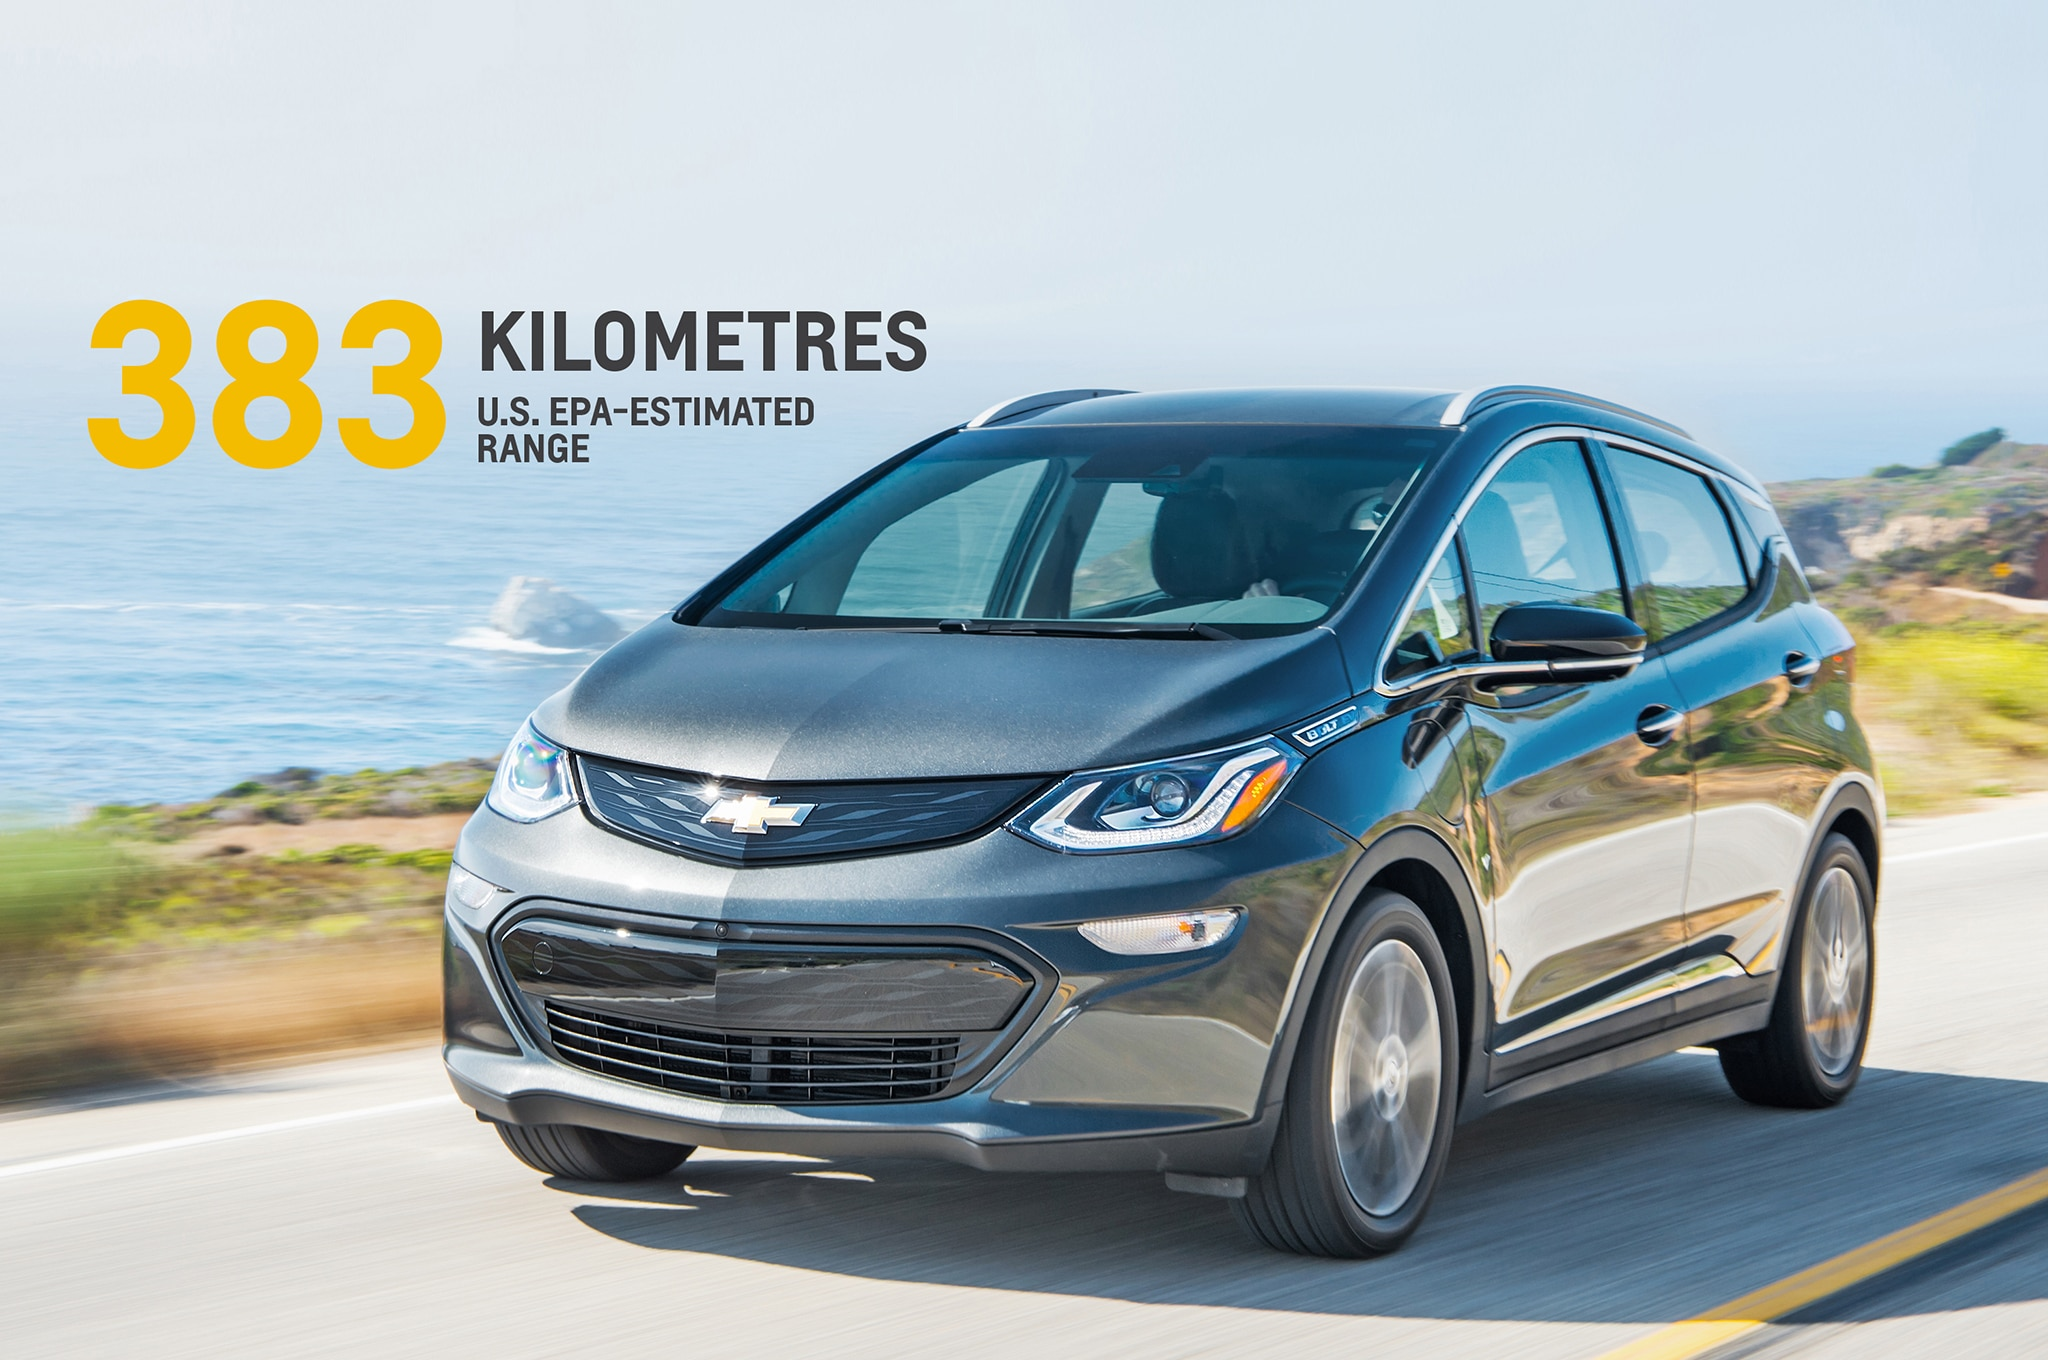 2017 Chevrolet Bolt EV EPA Estimated Range